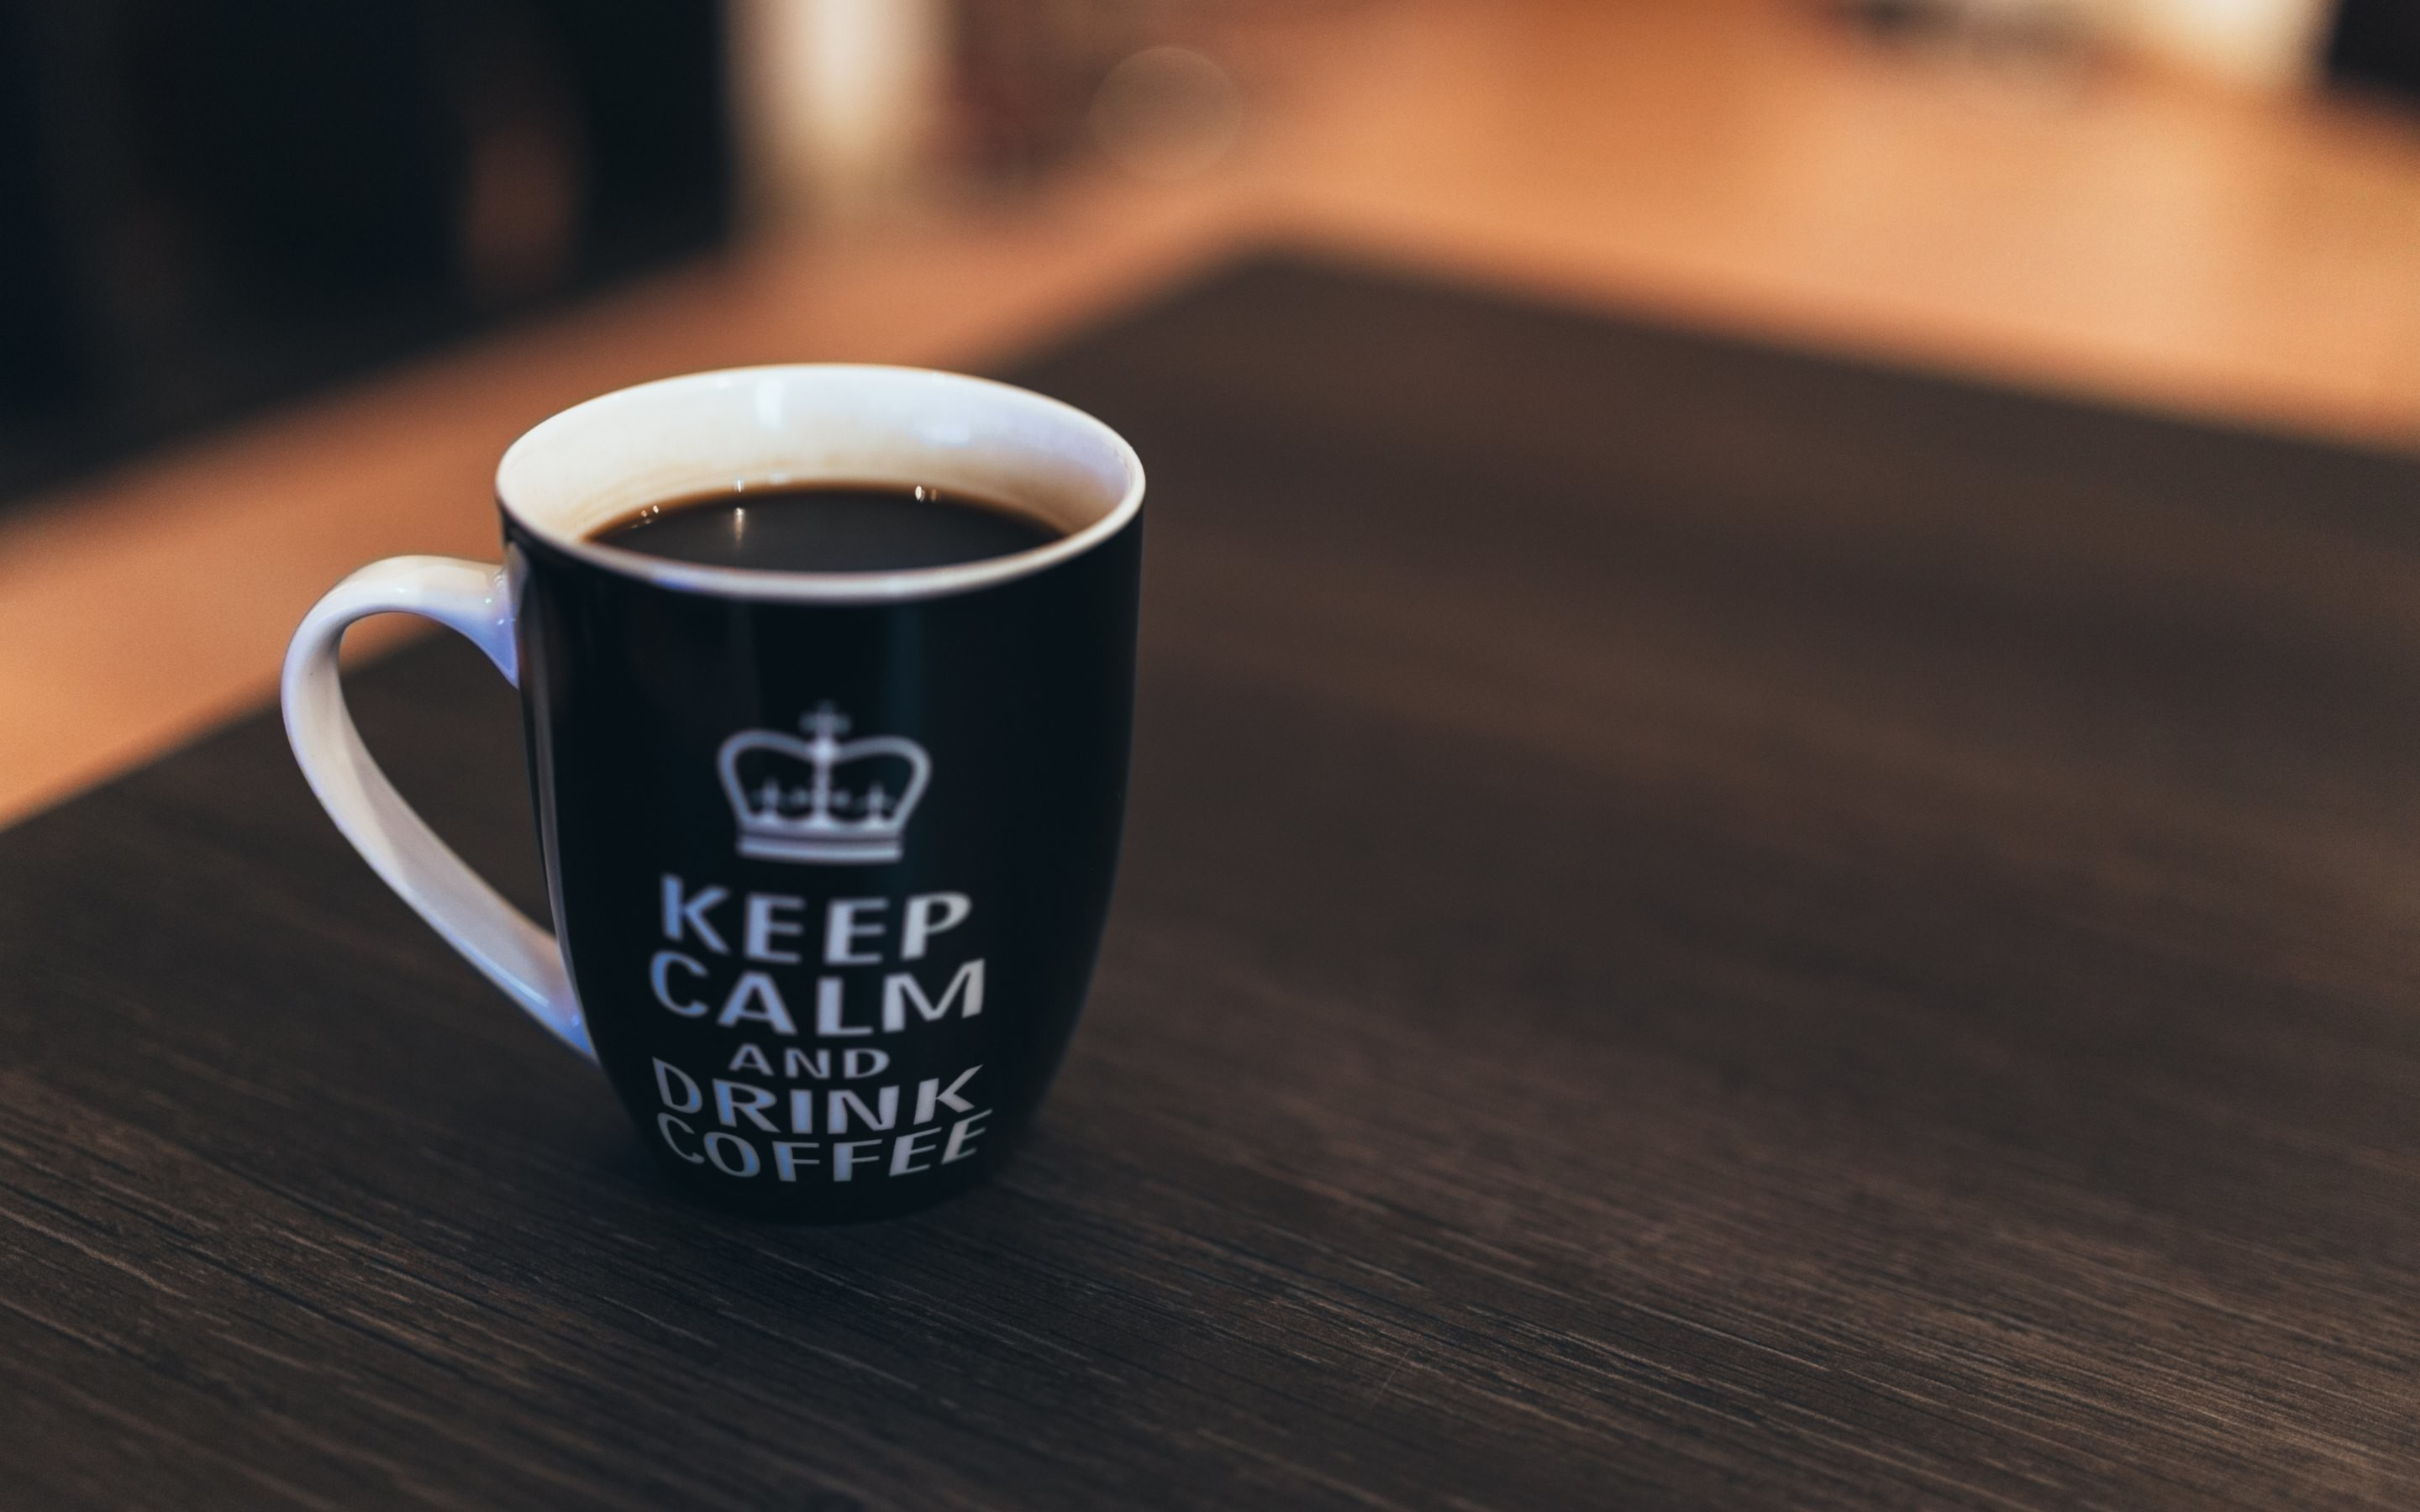 2880x1800 Keep Calm Drink Coffee Wallpaper HD Desktop